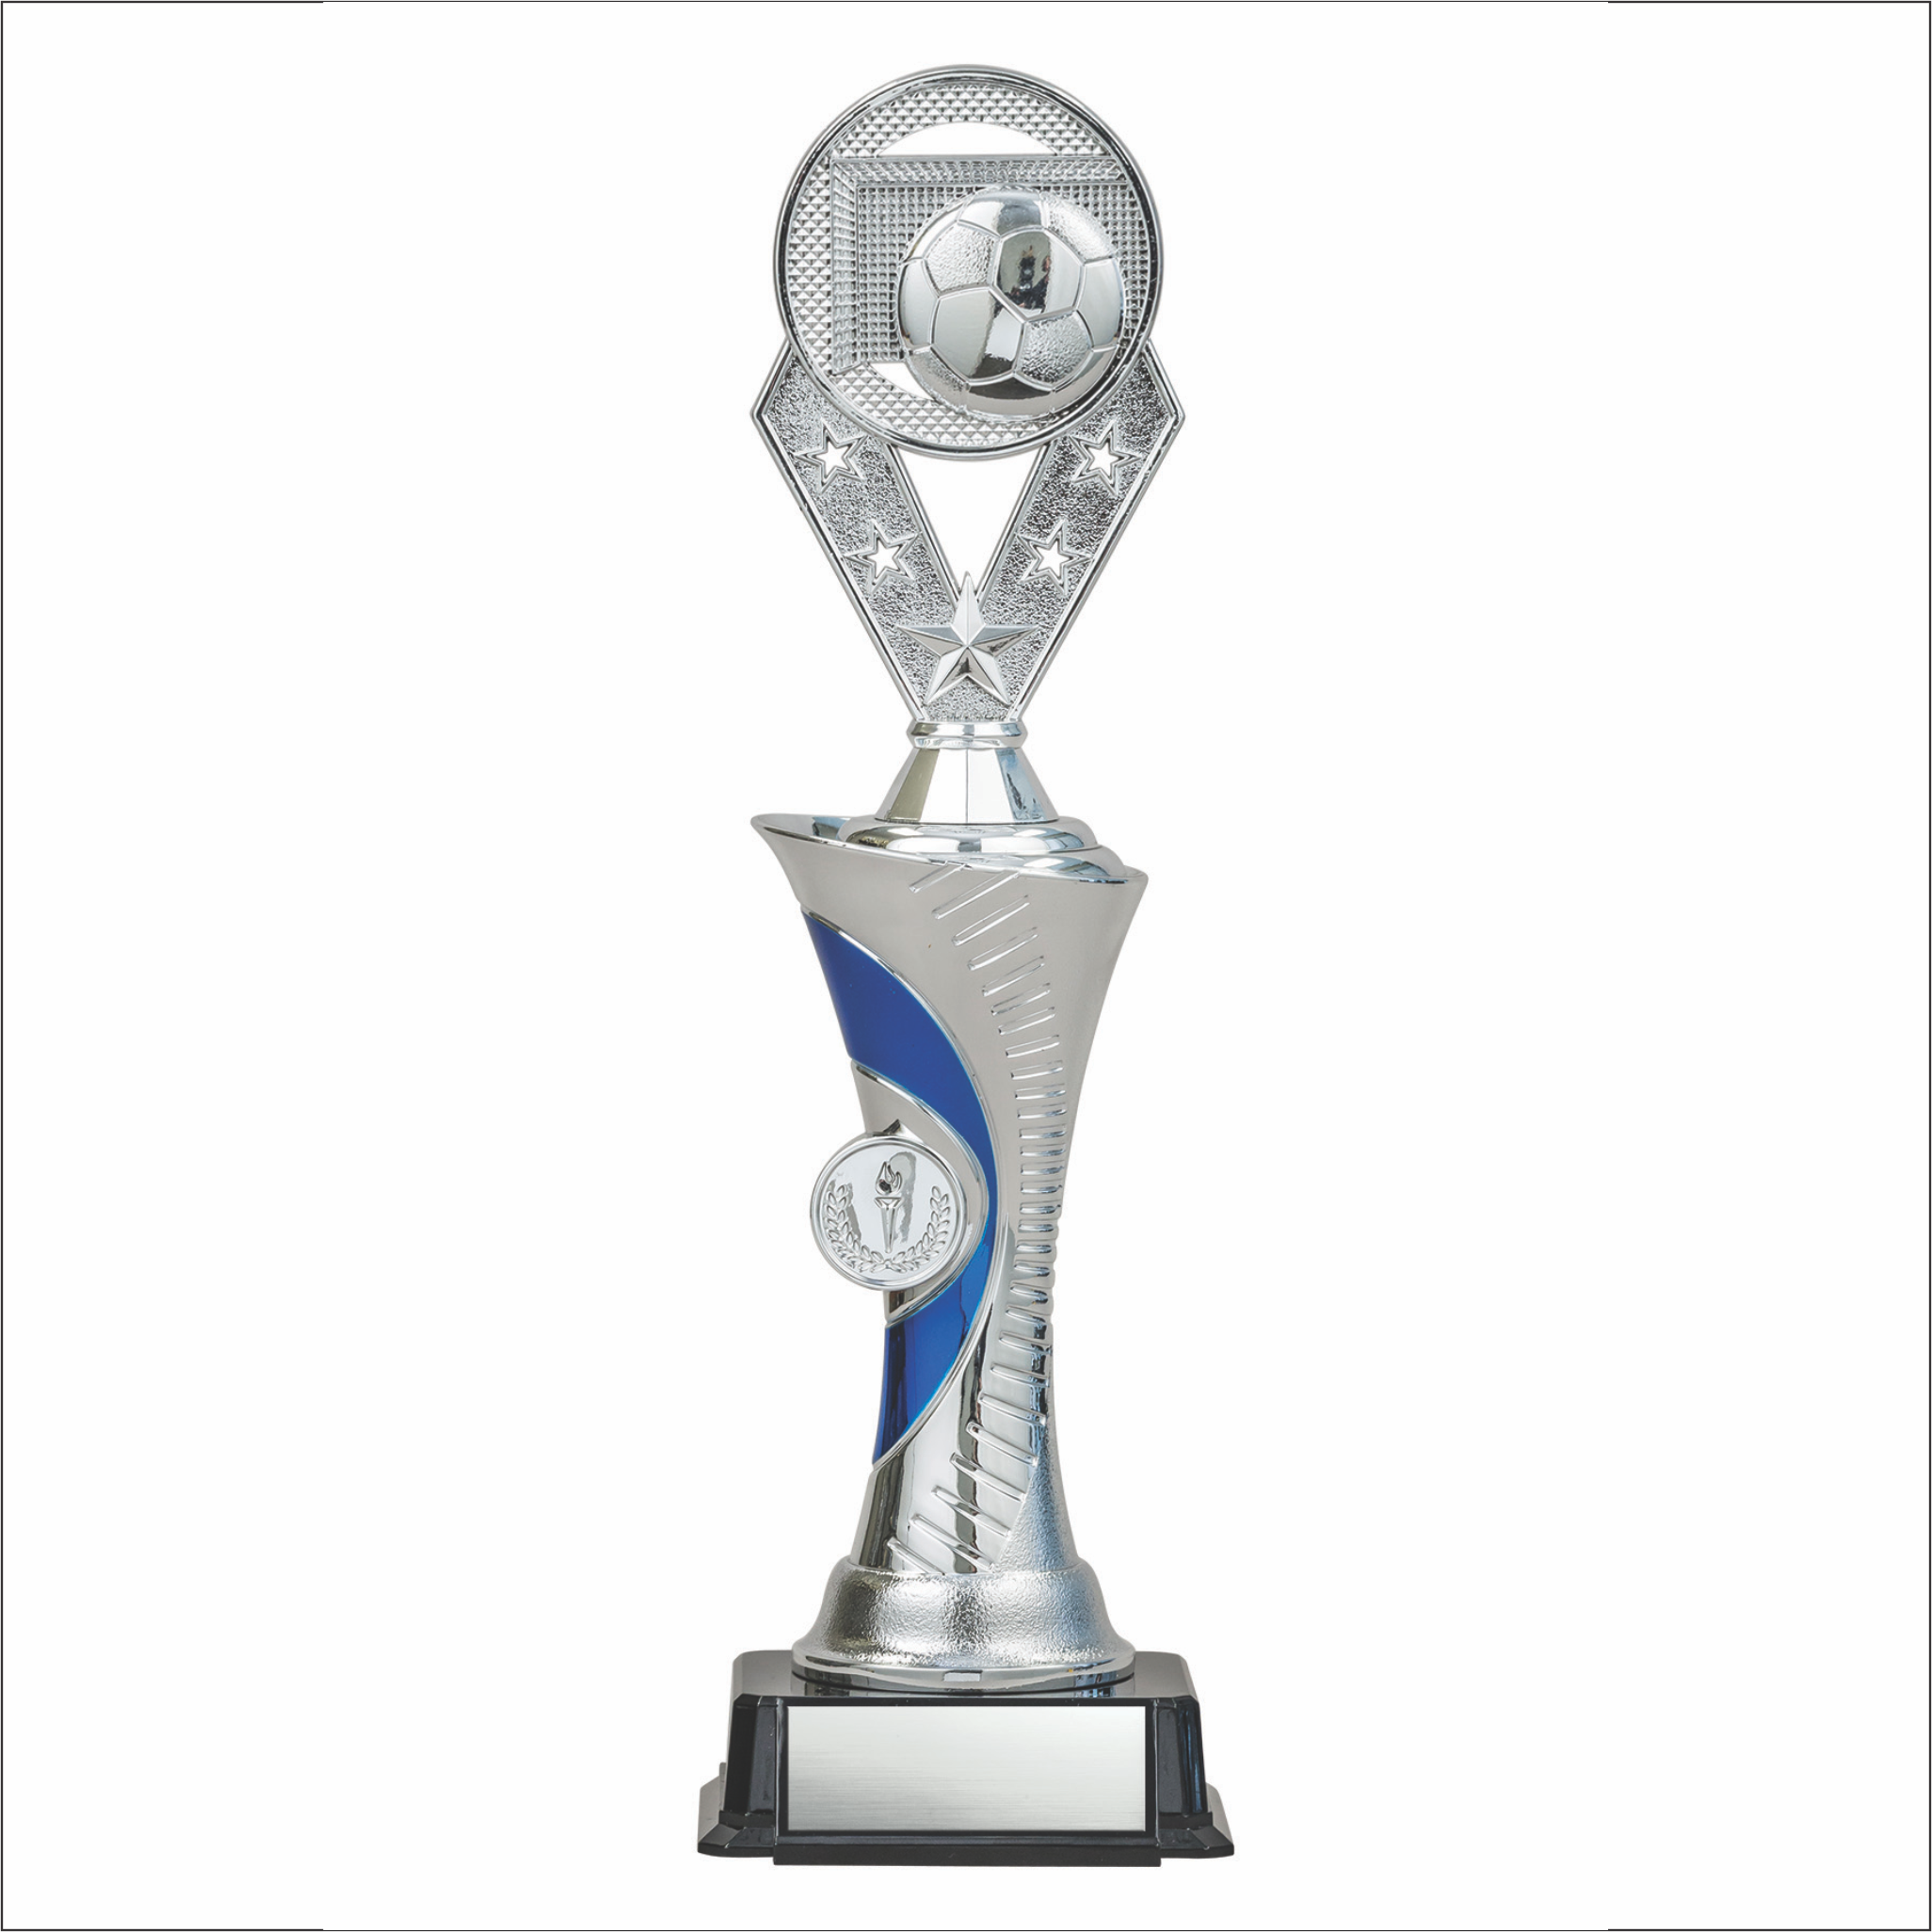 Soccer trophy - Alpha series - Galaxy style